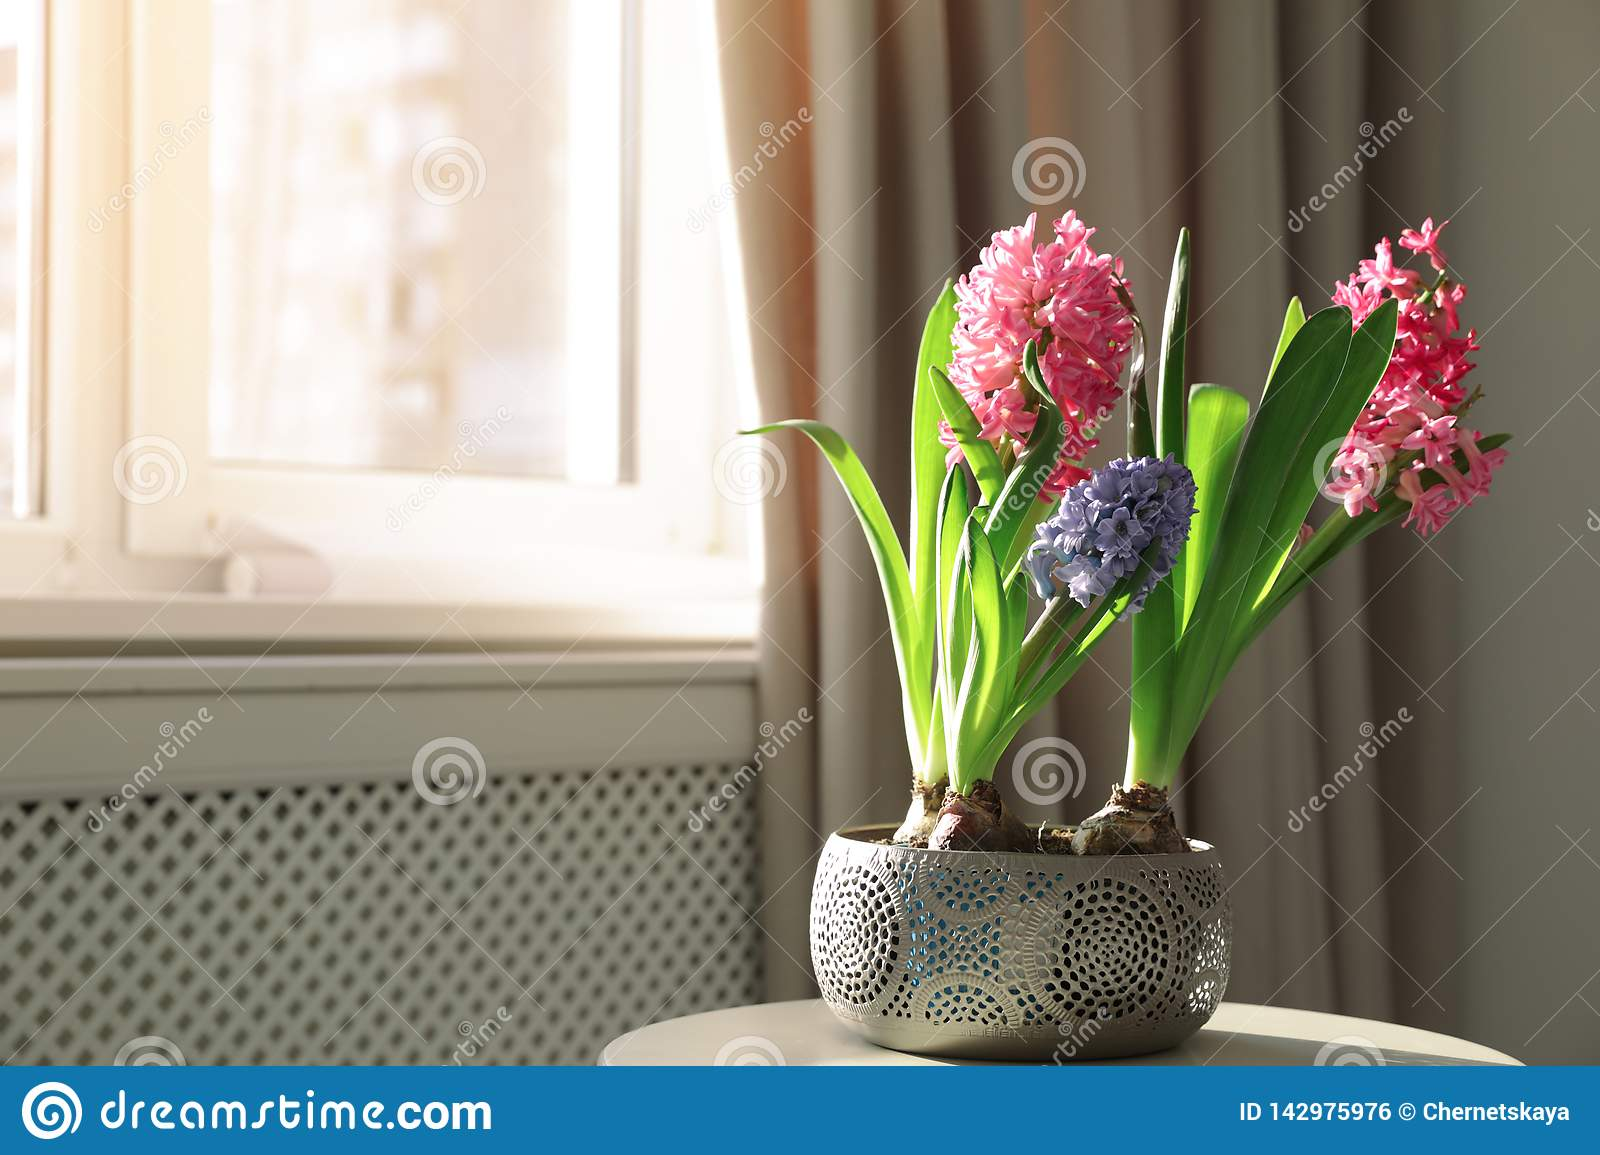 Blooming spring hyacinth flowers on table near window at home